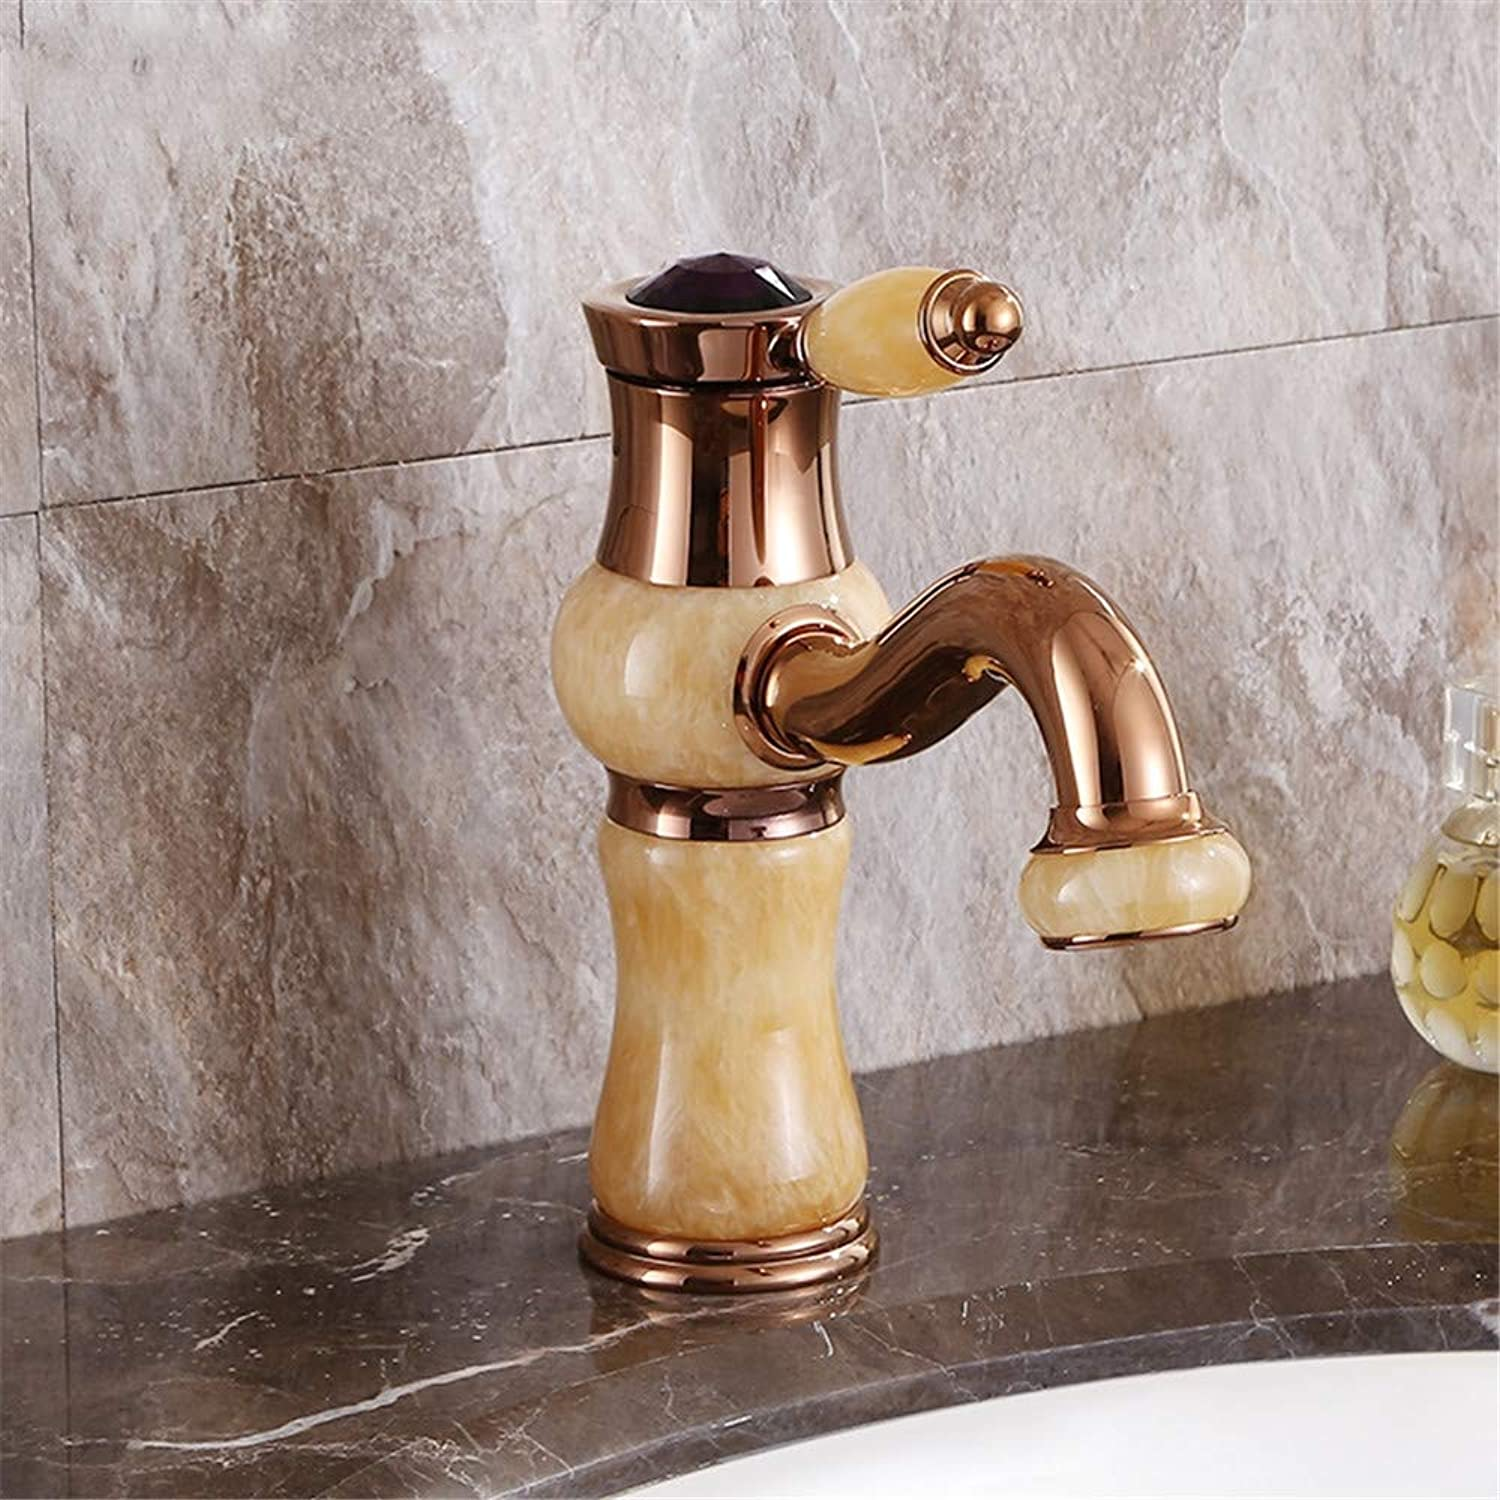 PajCzh Taps Taps Faucet Faucet Sink Bathroom Sink Taps pink gold Jade Lavatory Faucet European Antique Copper Hot And Cold Wash Basin Faucet